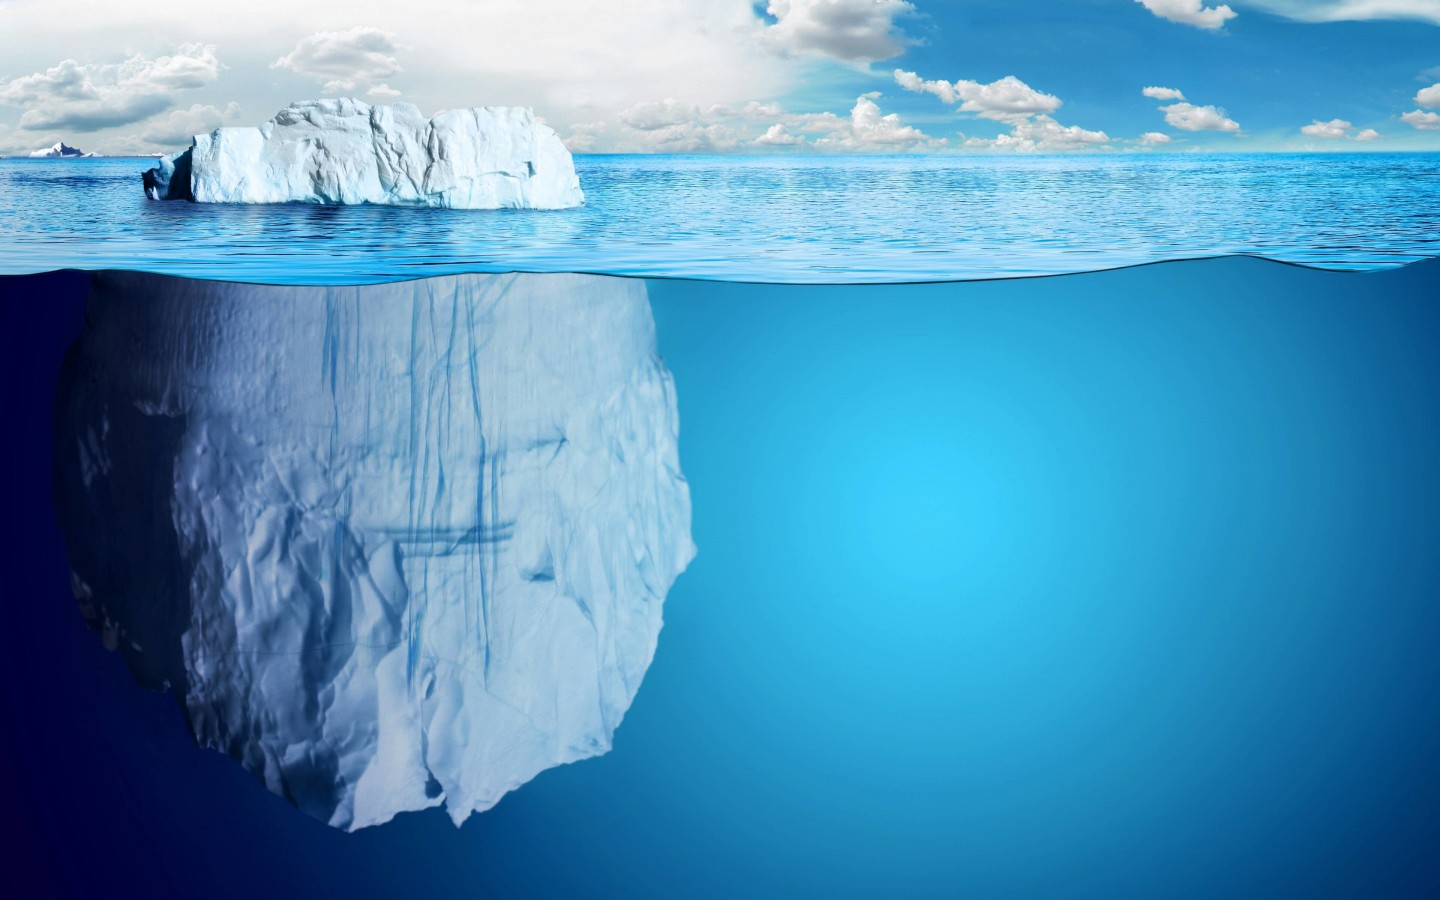 The invisible part of the iceberg Wallpaper for Desktop 1440x900